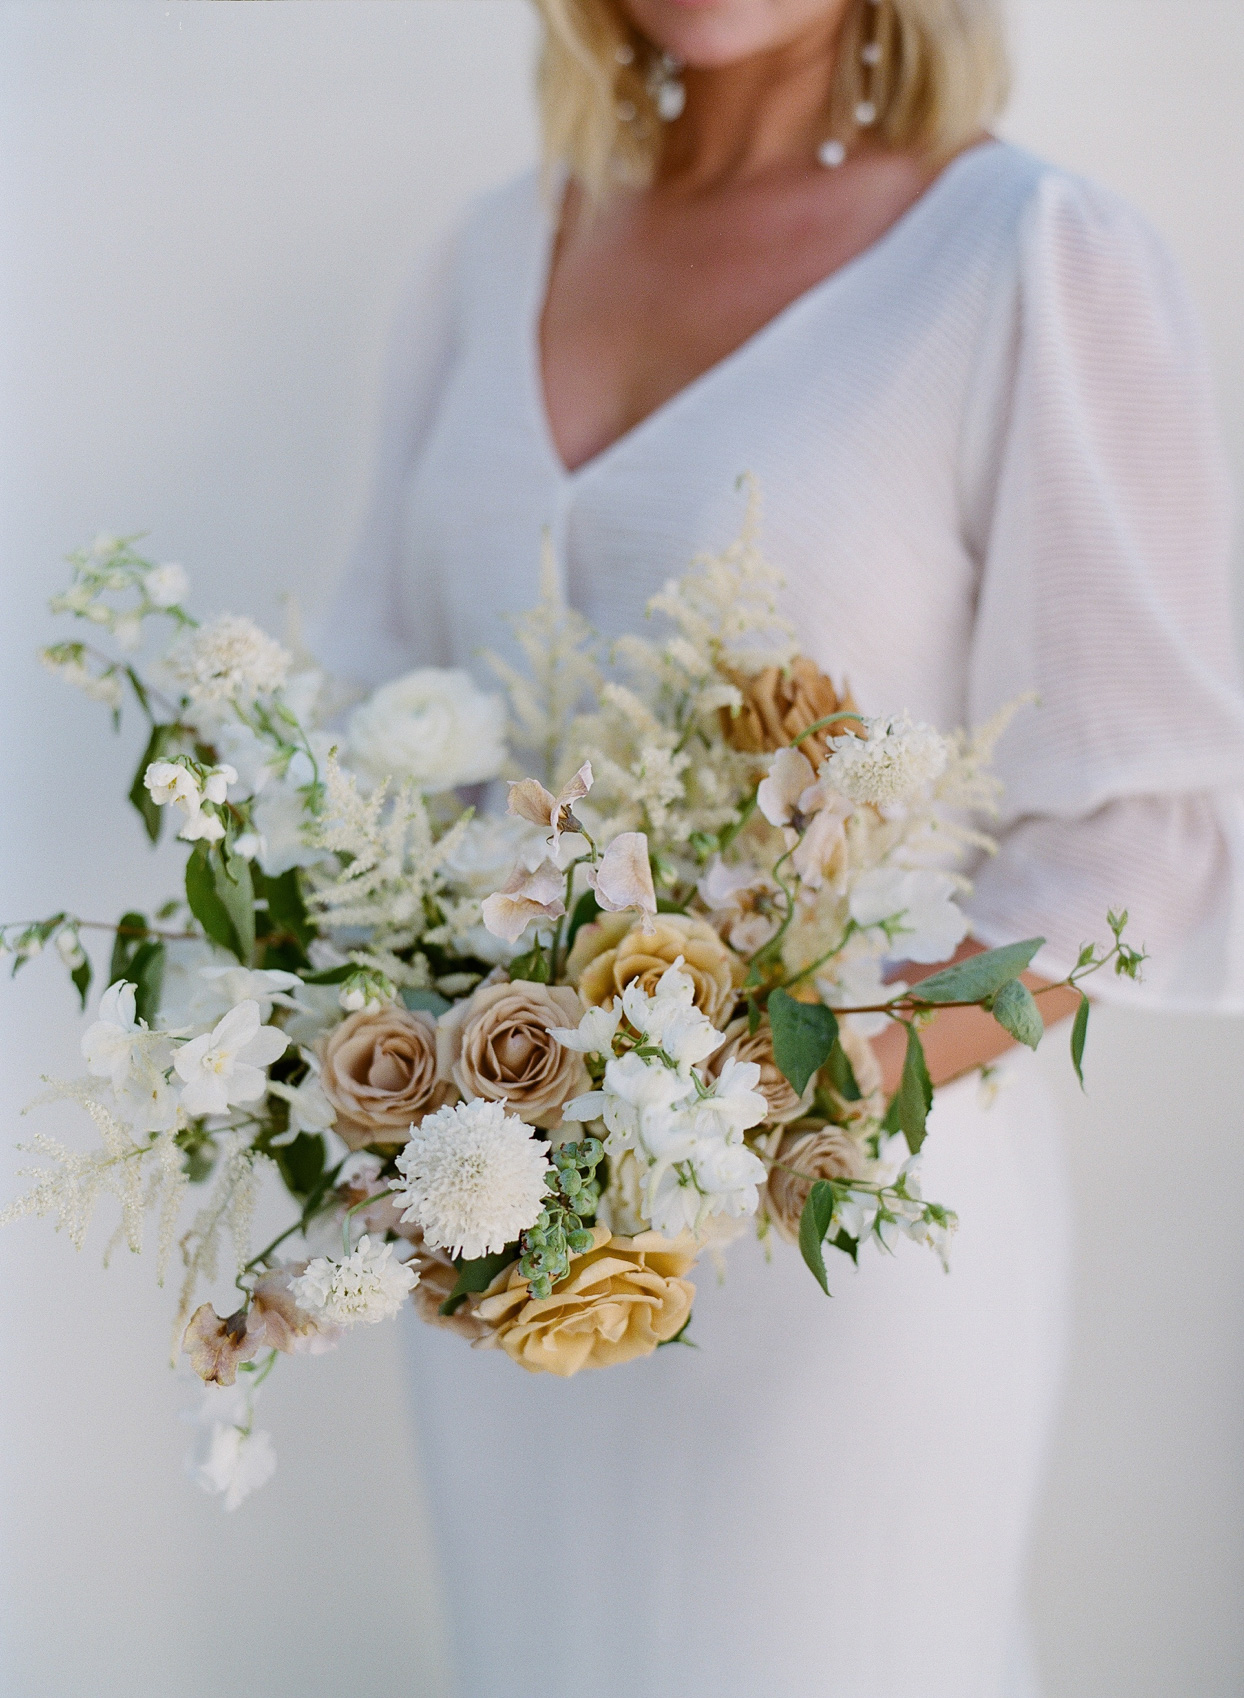 bride holding white and neutral hued floral wedding bouquet